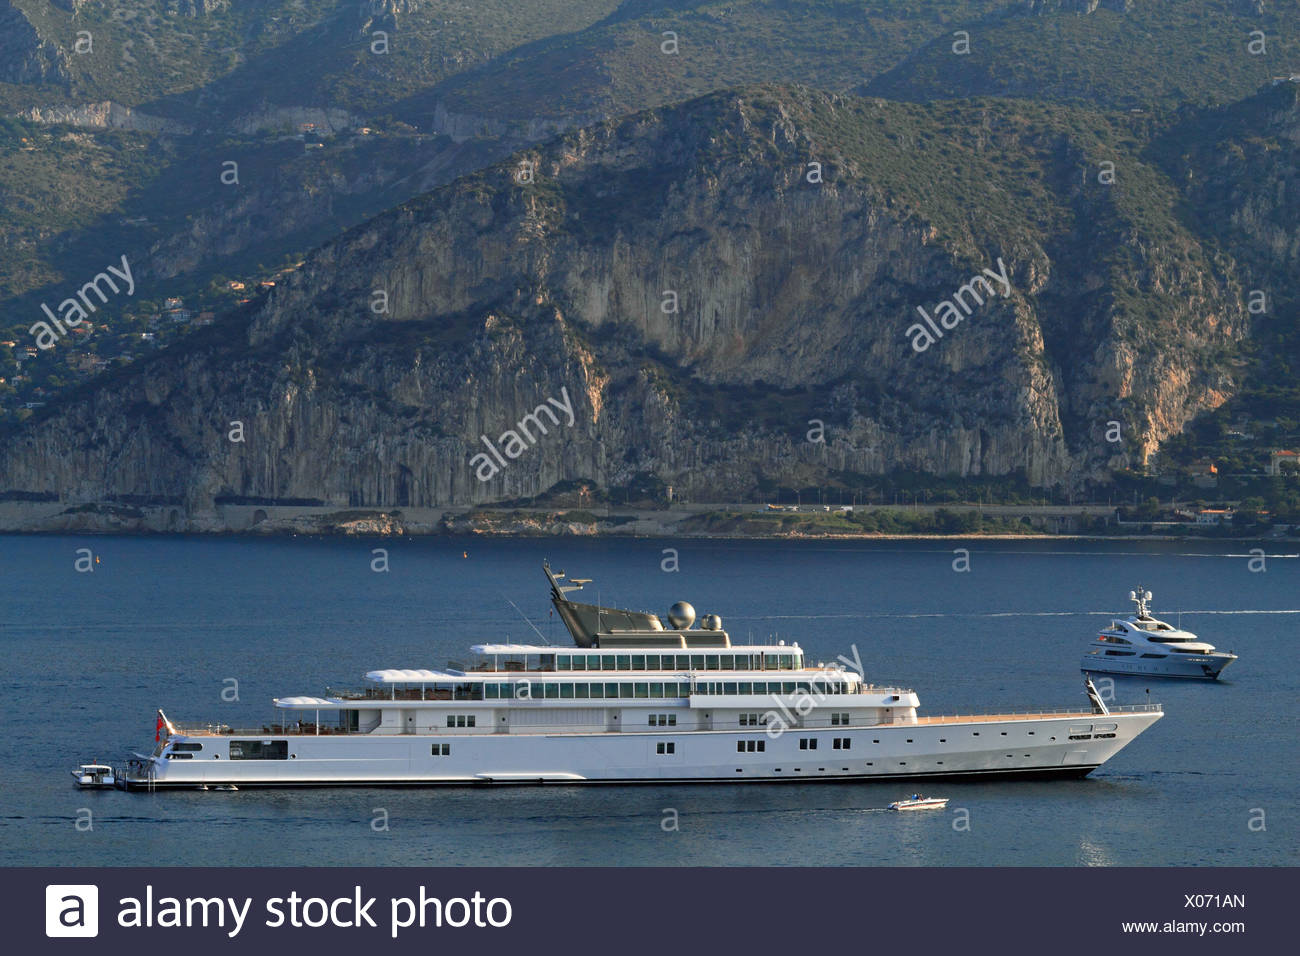 Motor yacht 'Rising Sun', 138m, built by Luersson Yachts in 2004, owned by David Geffen, previously owned by Larry Ellison - Stock Image